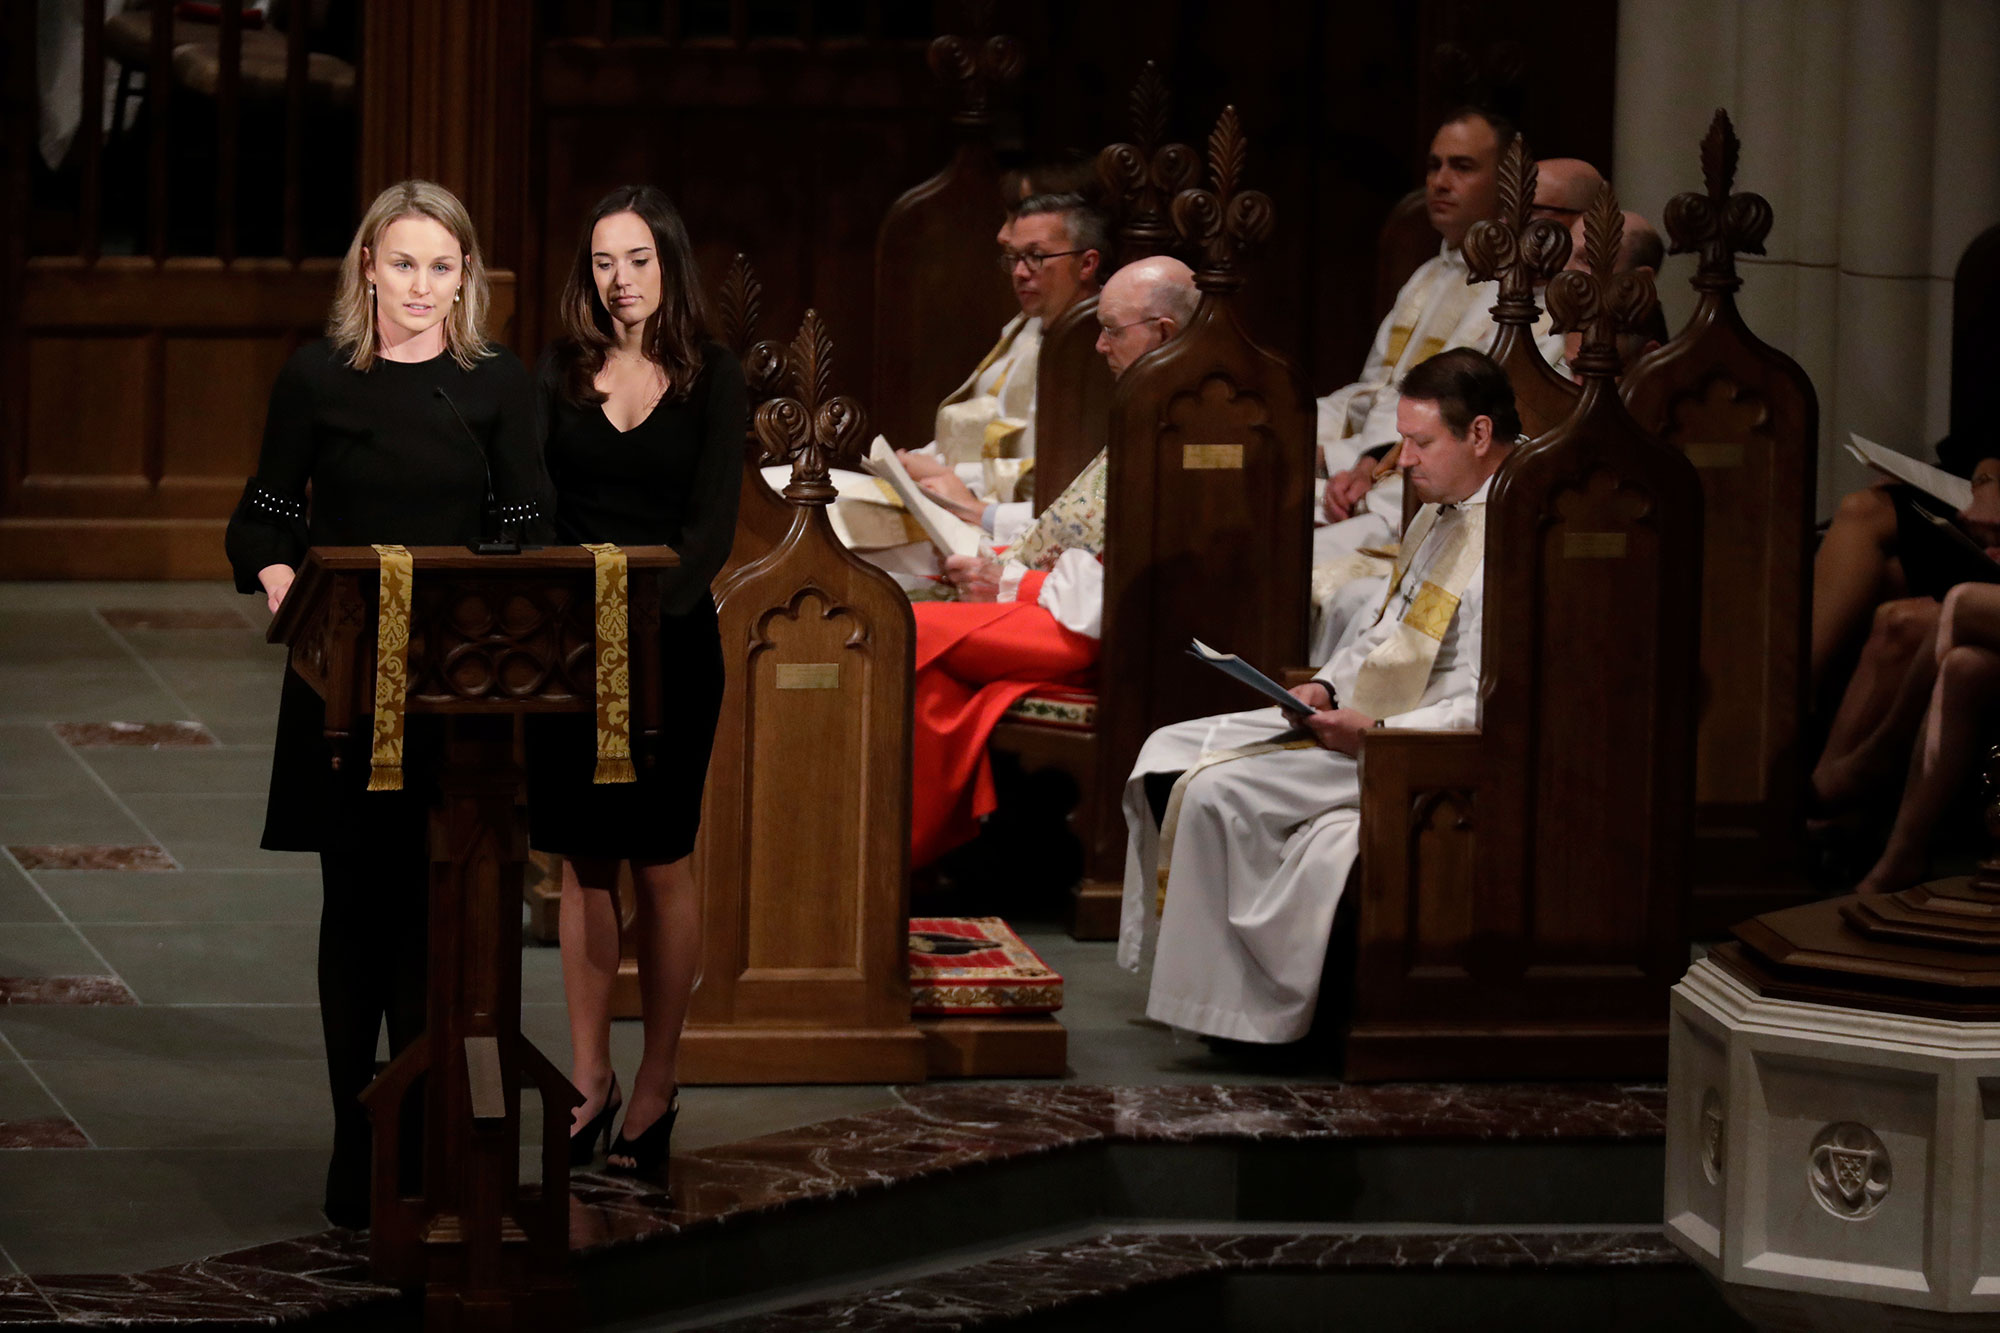 "<div class=""meta image-caption""><div class=""origin-logo origin-image none""><span>none</span></div><span class=""caption-text"">Granddaughters Nancy Ellis LeBlond Sosa, left, and Georgia Grace Koch read scripture during a funeral for former President George H.W. Bush at St. Martin's Episcopal Church. (Mark Humphrey/AP Photo)</span></div>"